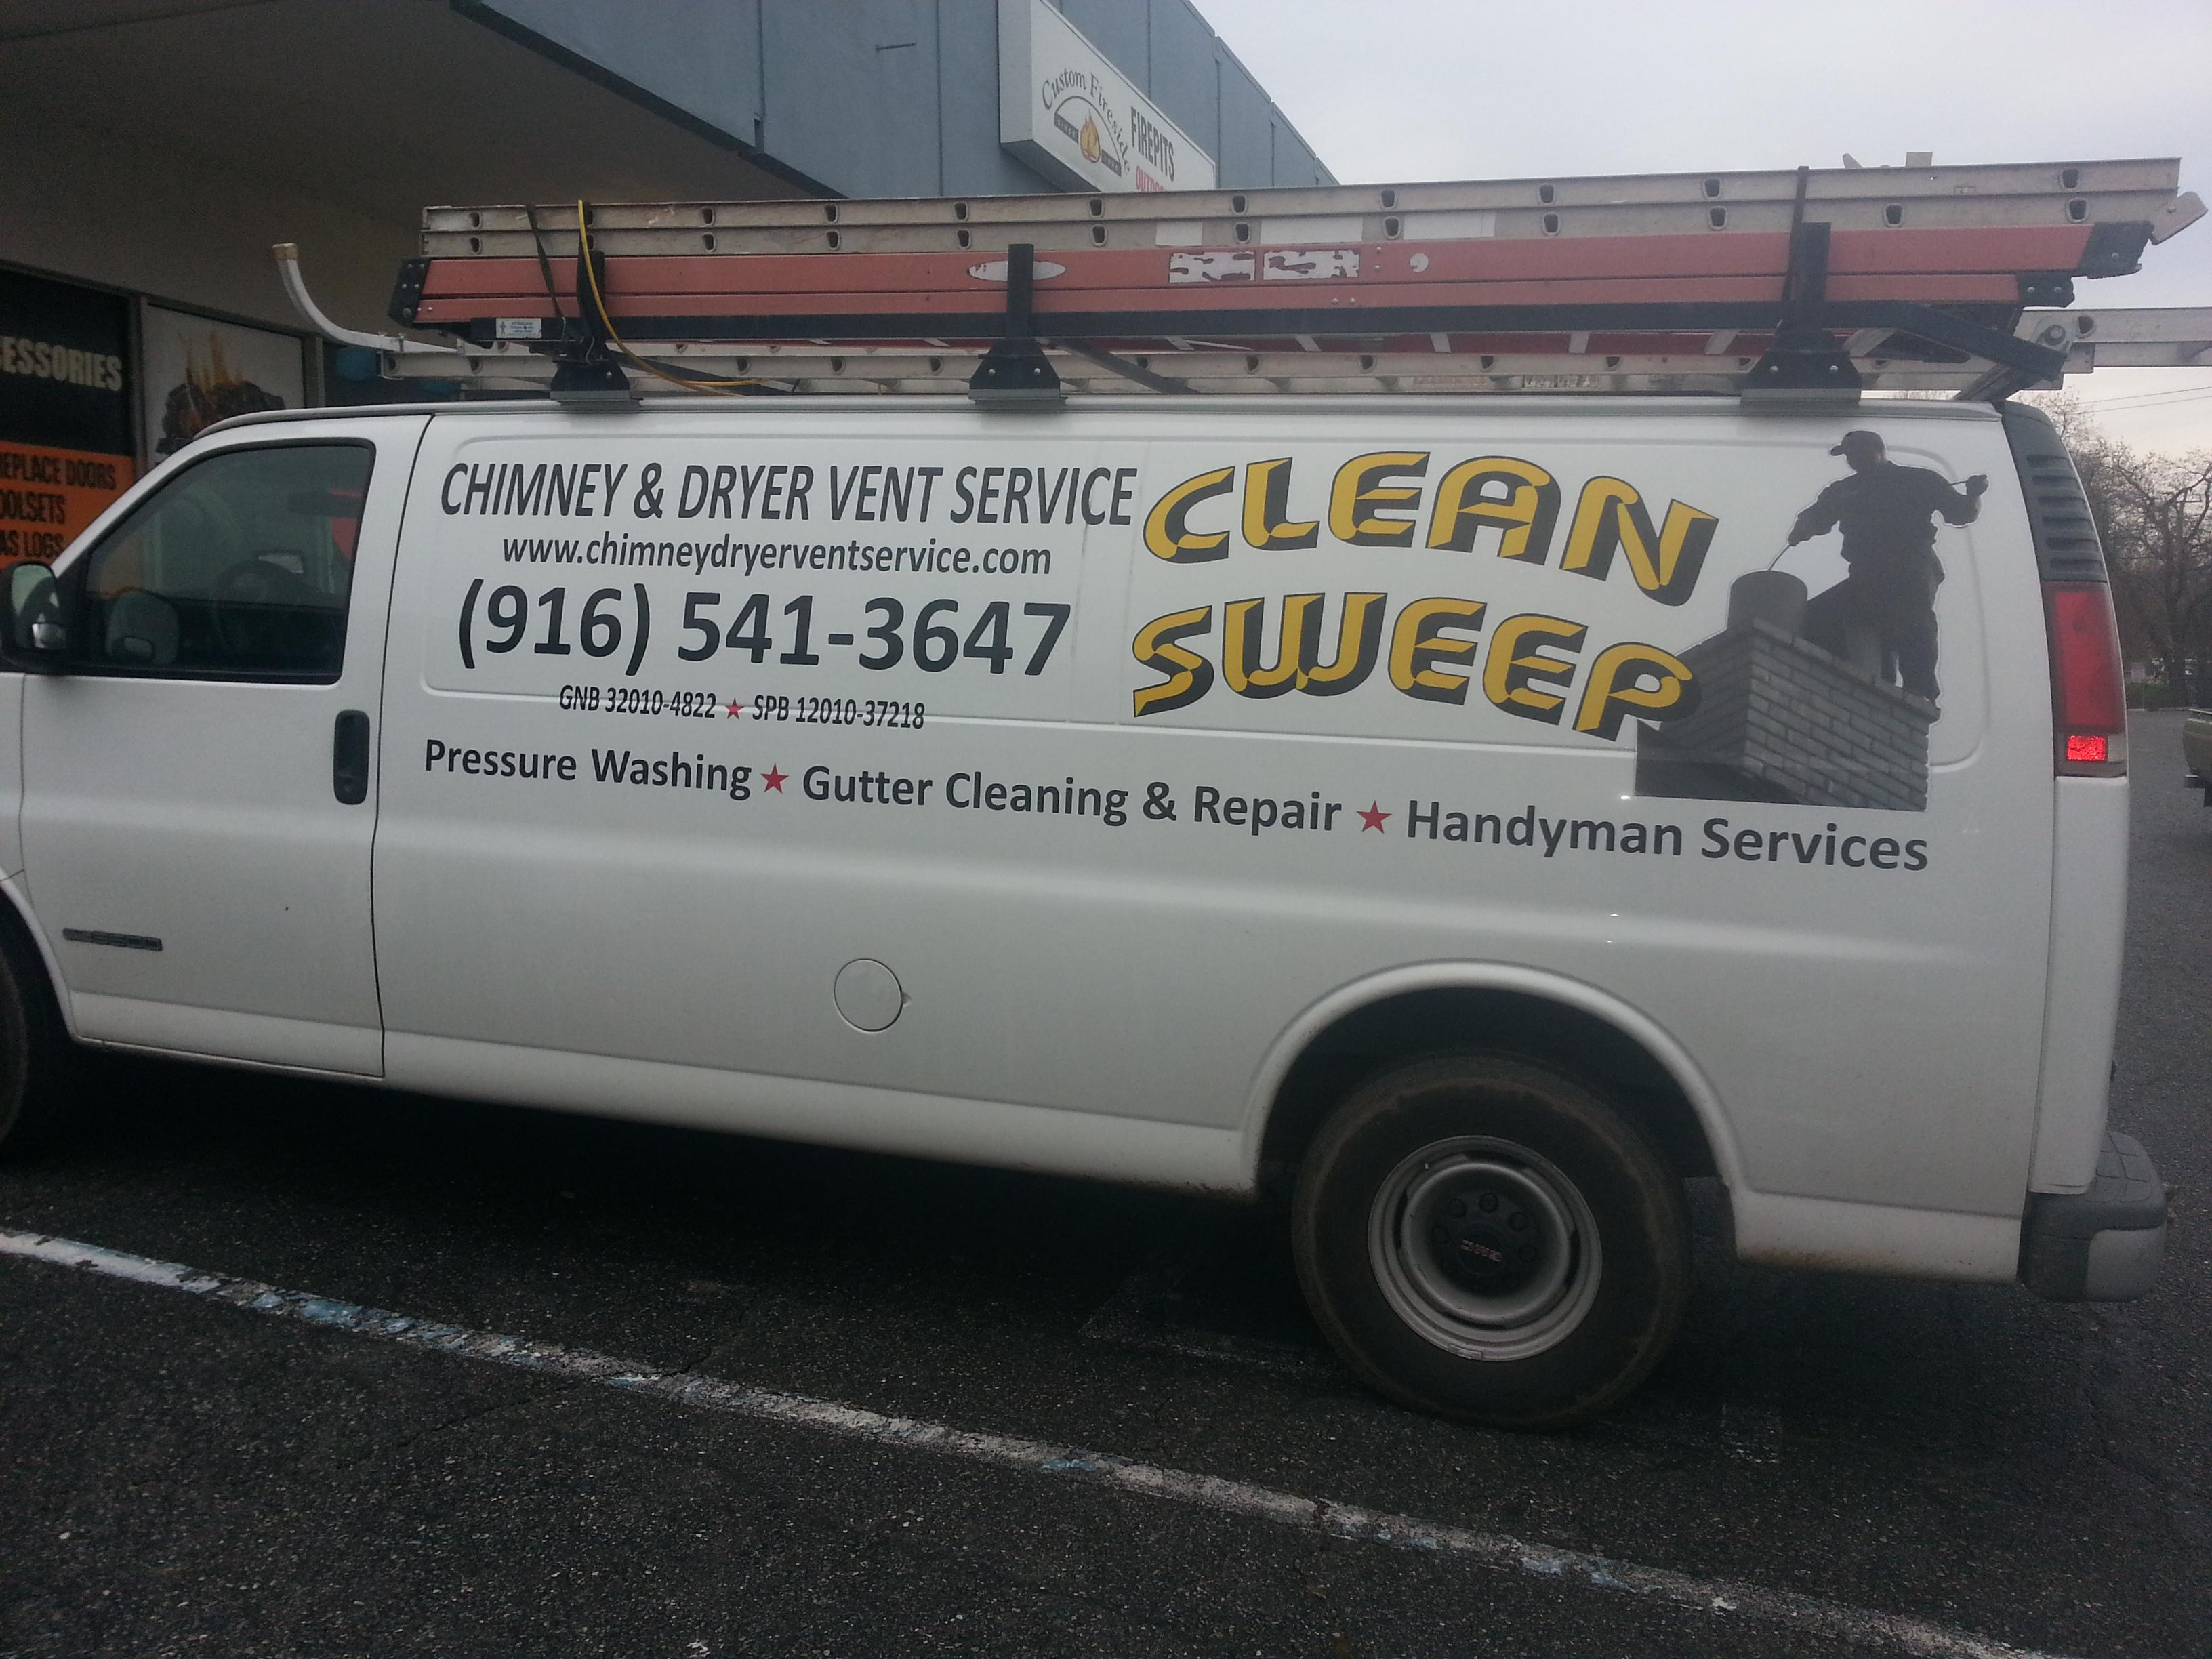 Clean Sweep Chimney Amp Dryer Vent Service